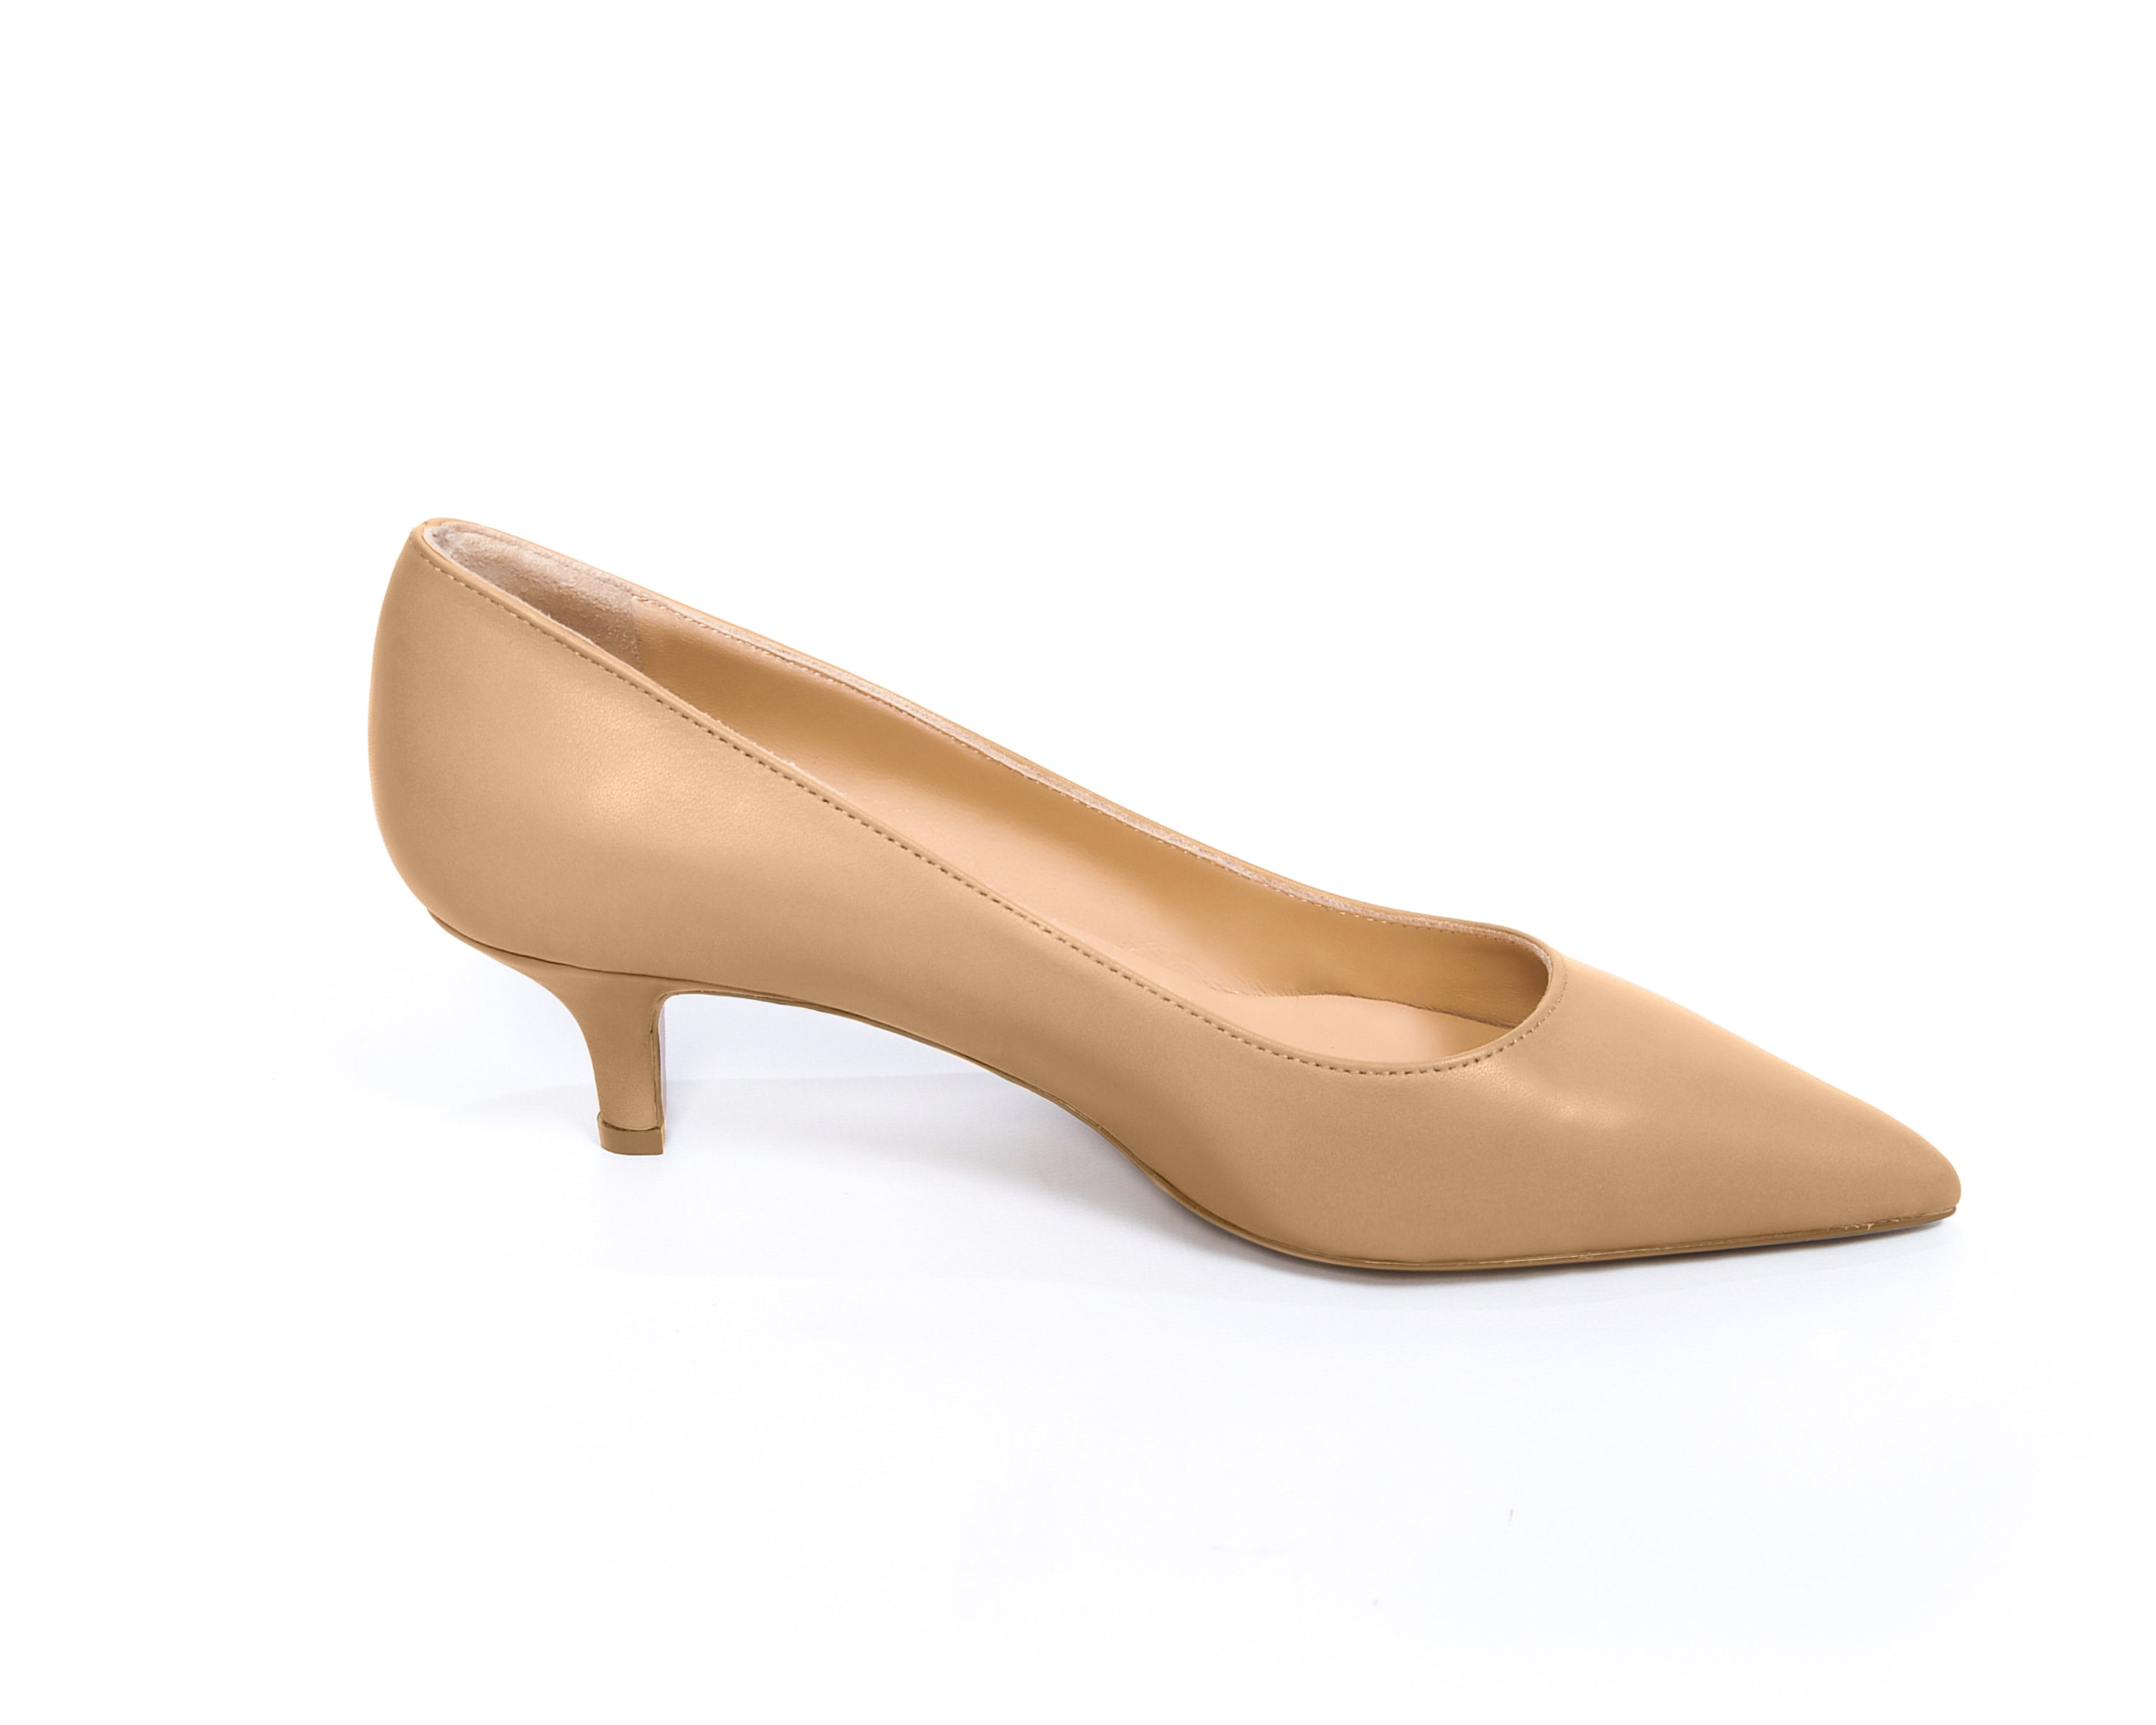 Office Professional. Business professional high heels. Women's any occasion heels. Nude Pumps.